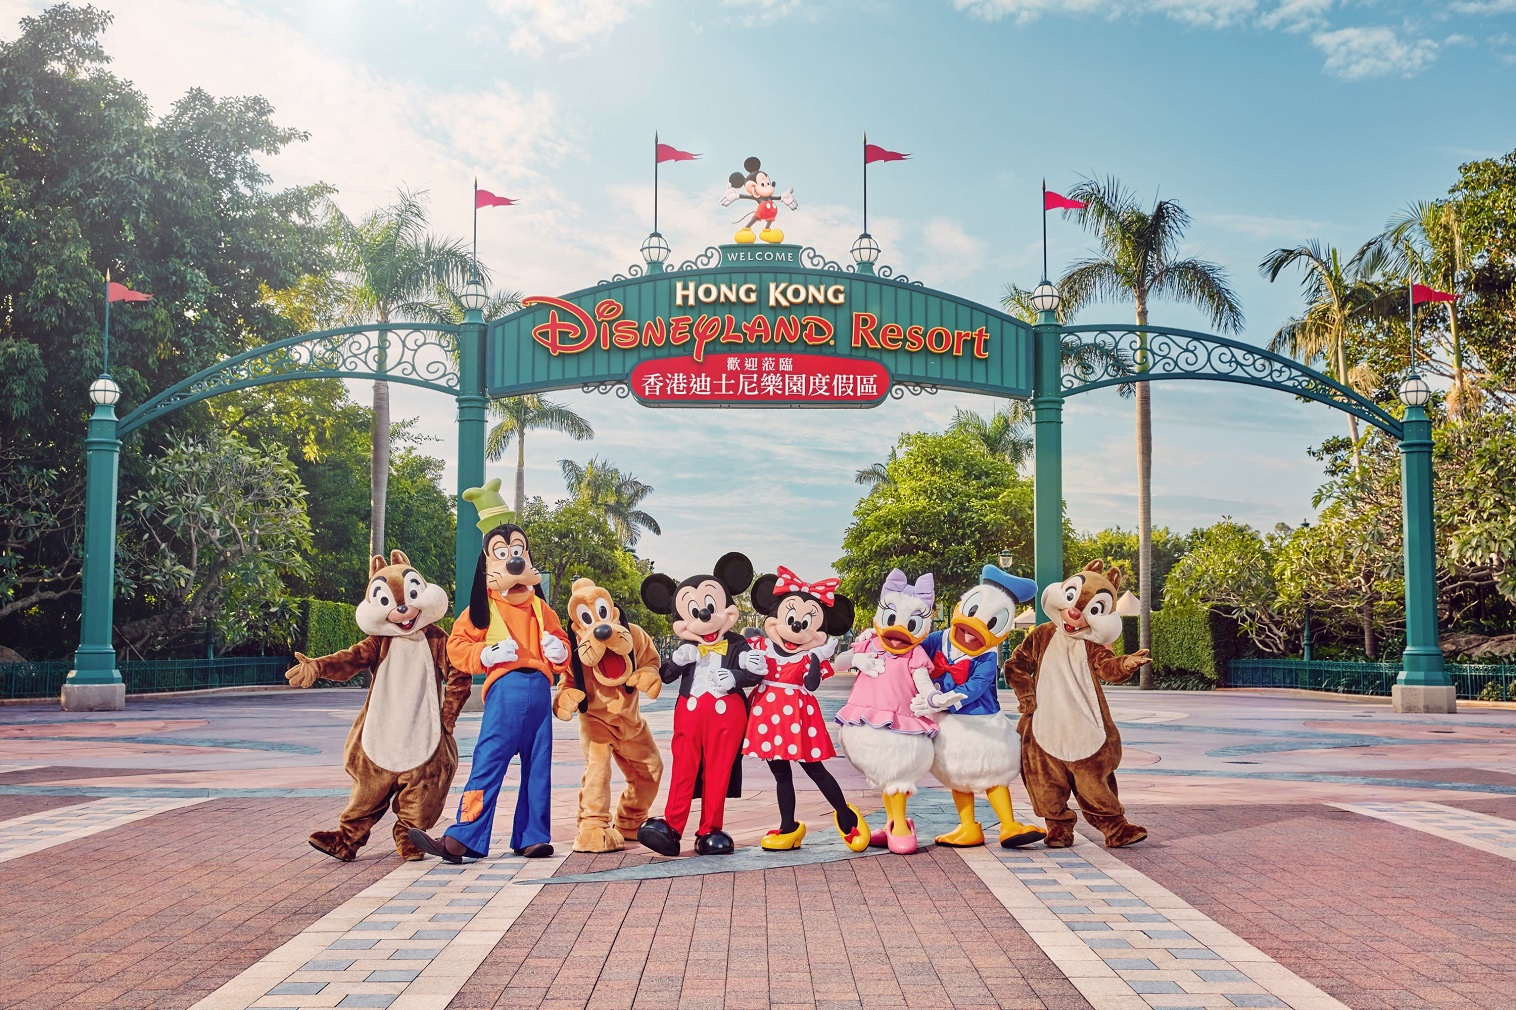 Hong Kong Disneyland theme park will officially reopen to the public on June 18, 2020.